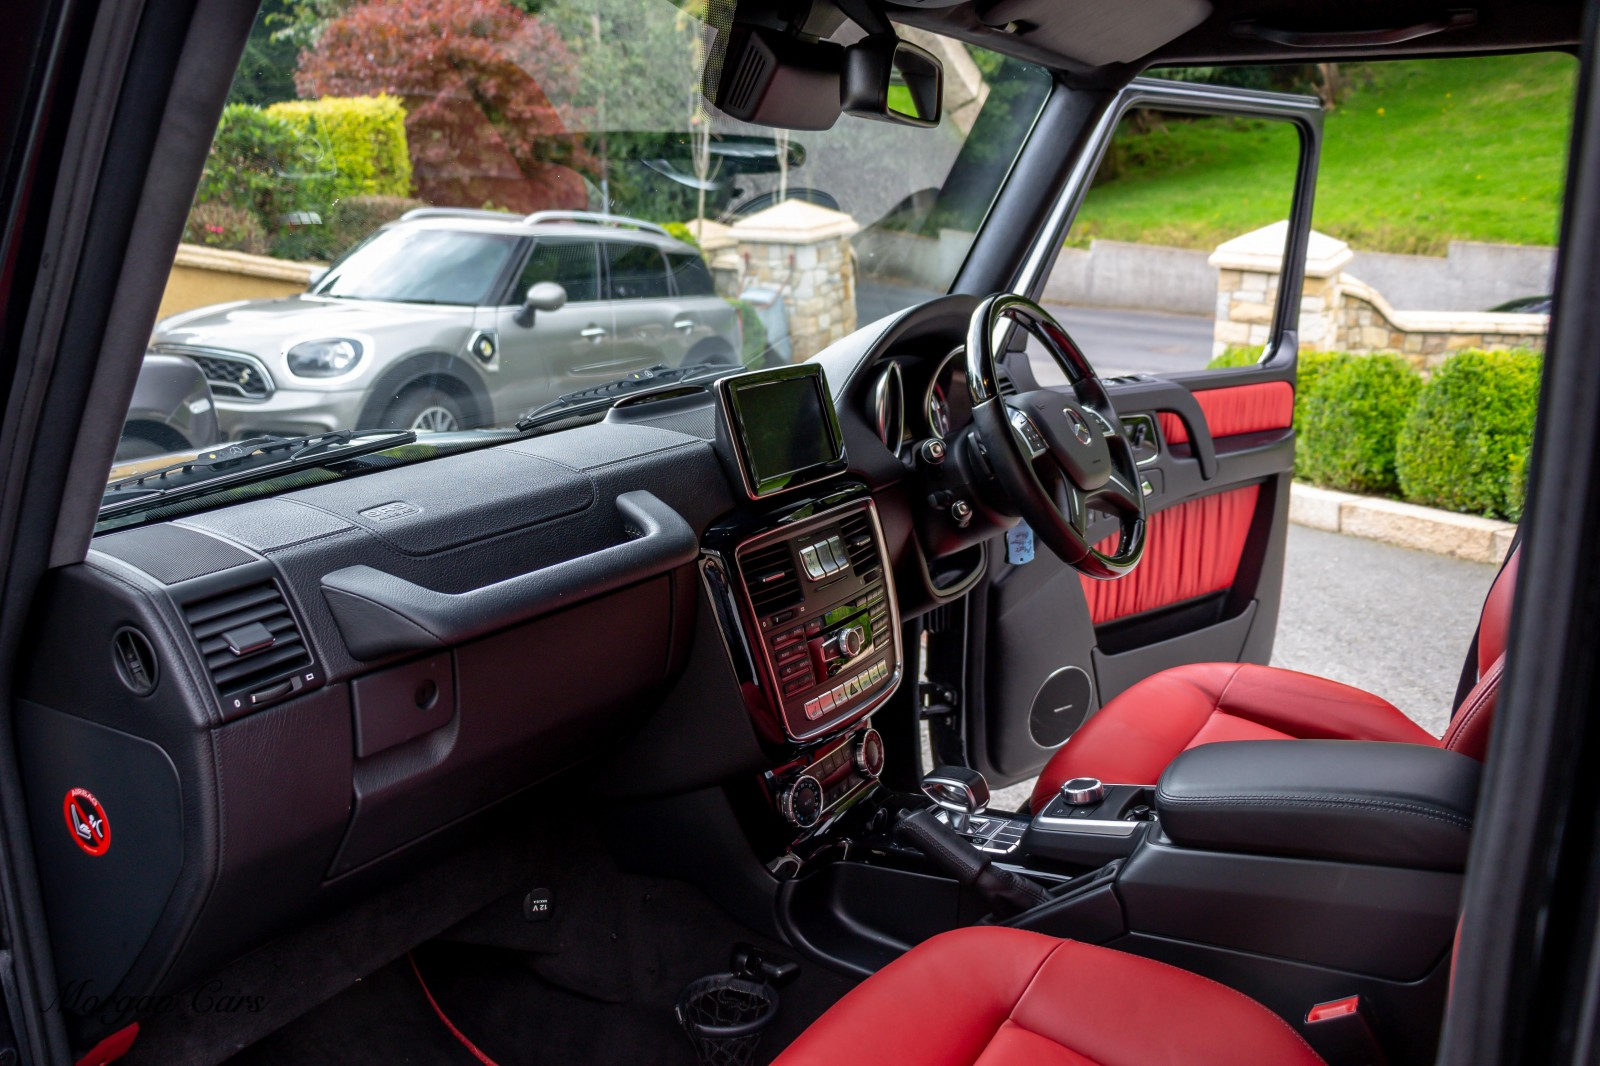 2013 Mercedes-Benz G Class G63 AMG Petrol Automatic – Morgan Cars 9 Mound Road, Warrenpoint, Newry BT34 3LW, UK full